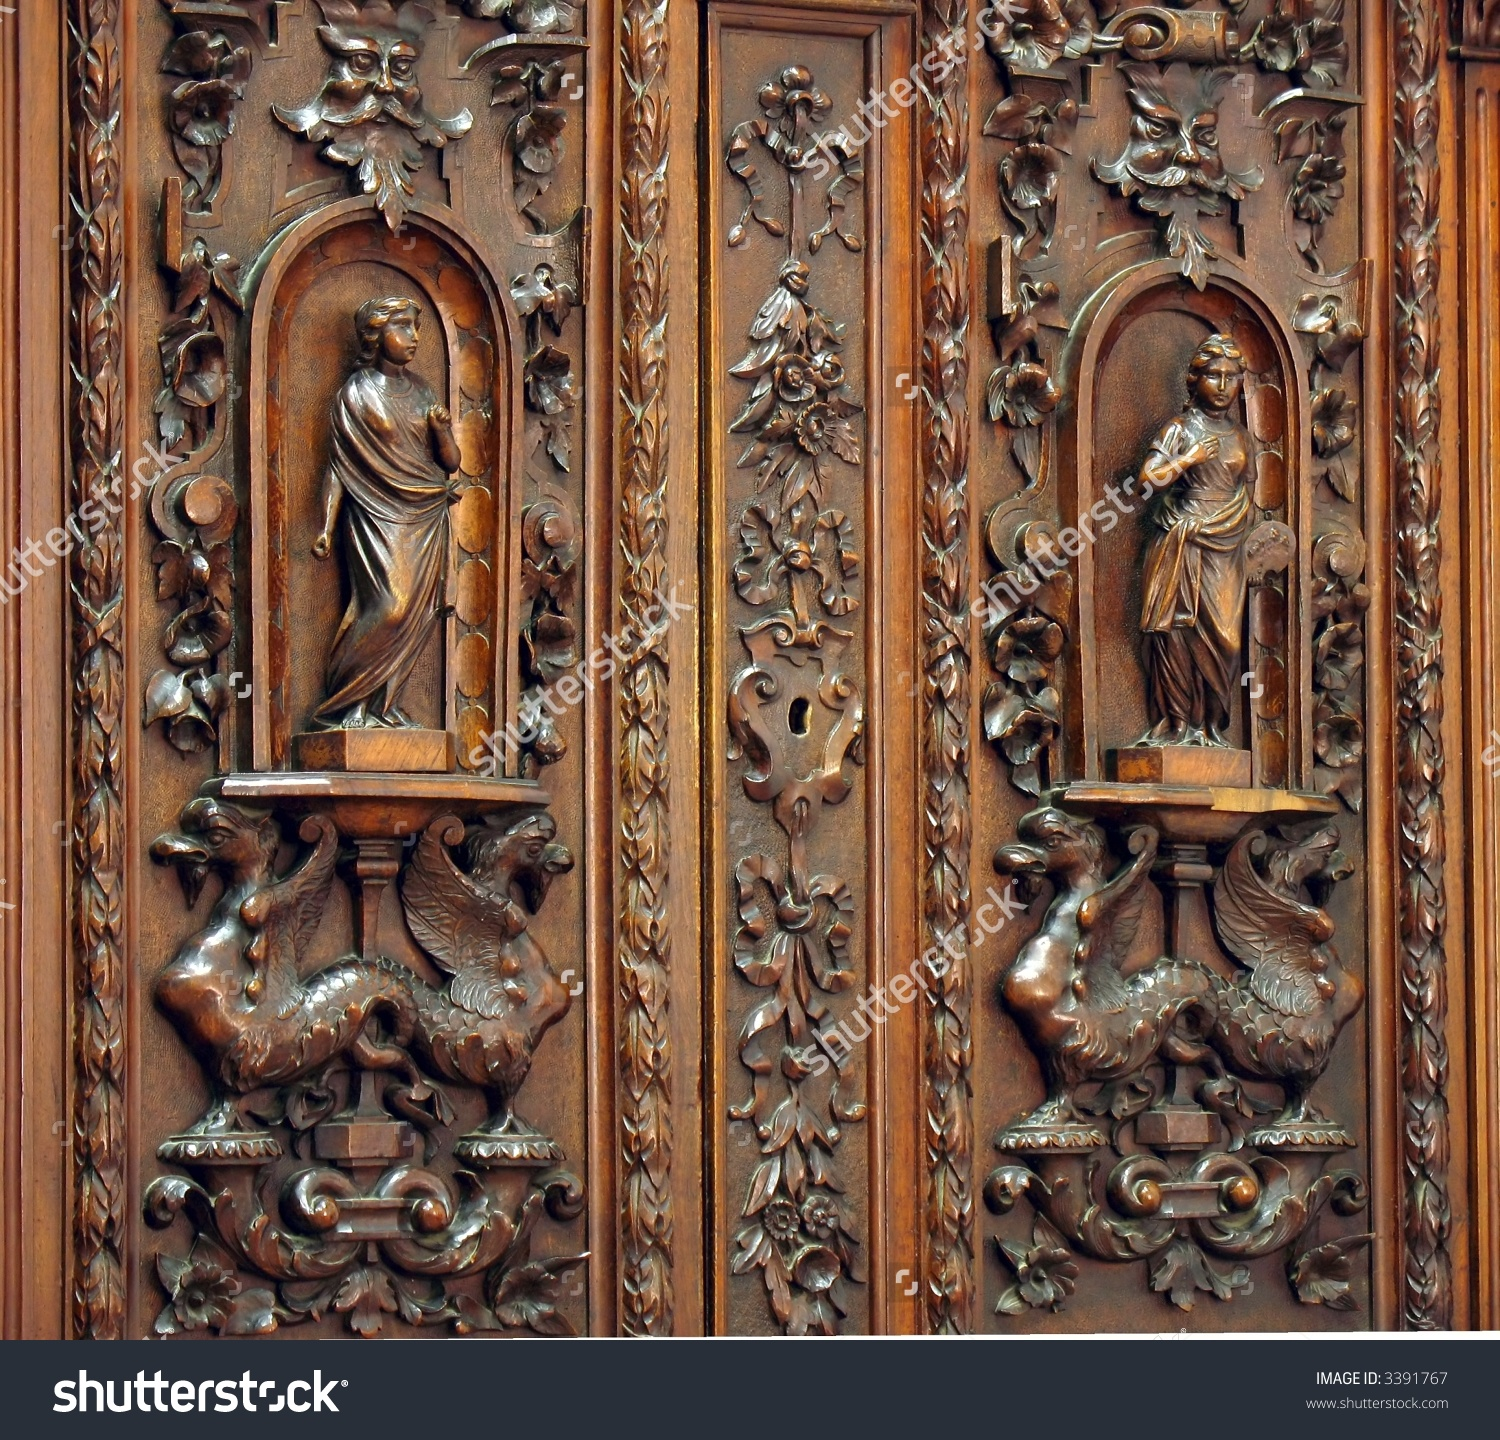 Antique Wardrobe Beautiful Wood Carvings On Stock Photo 3391767.